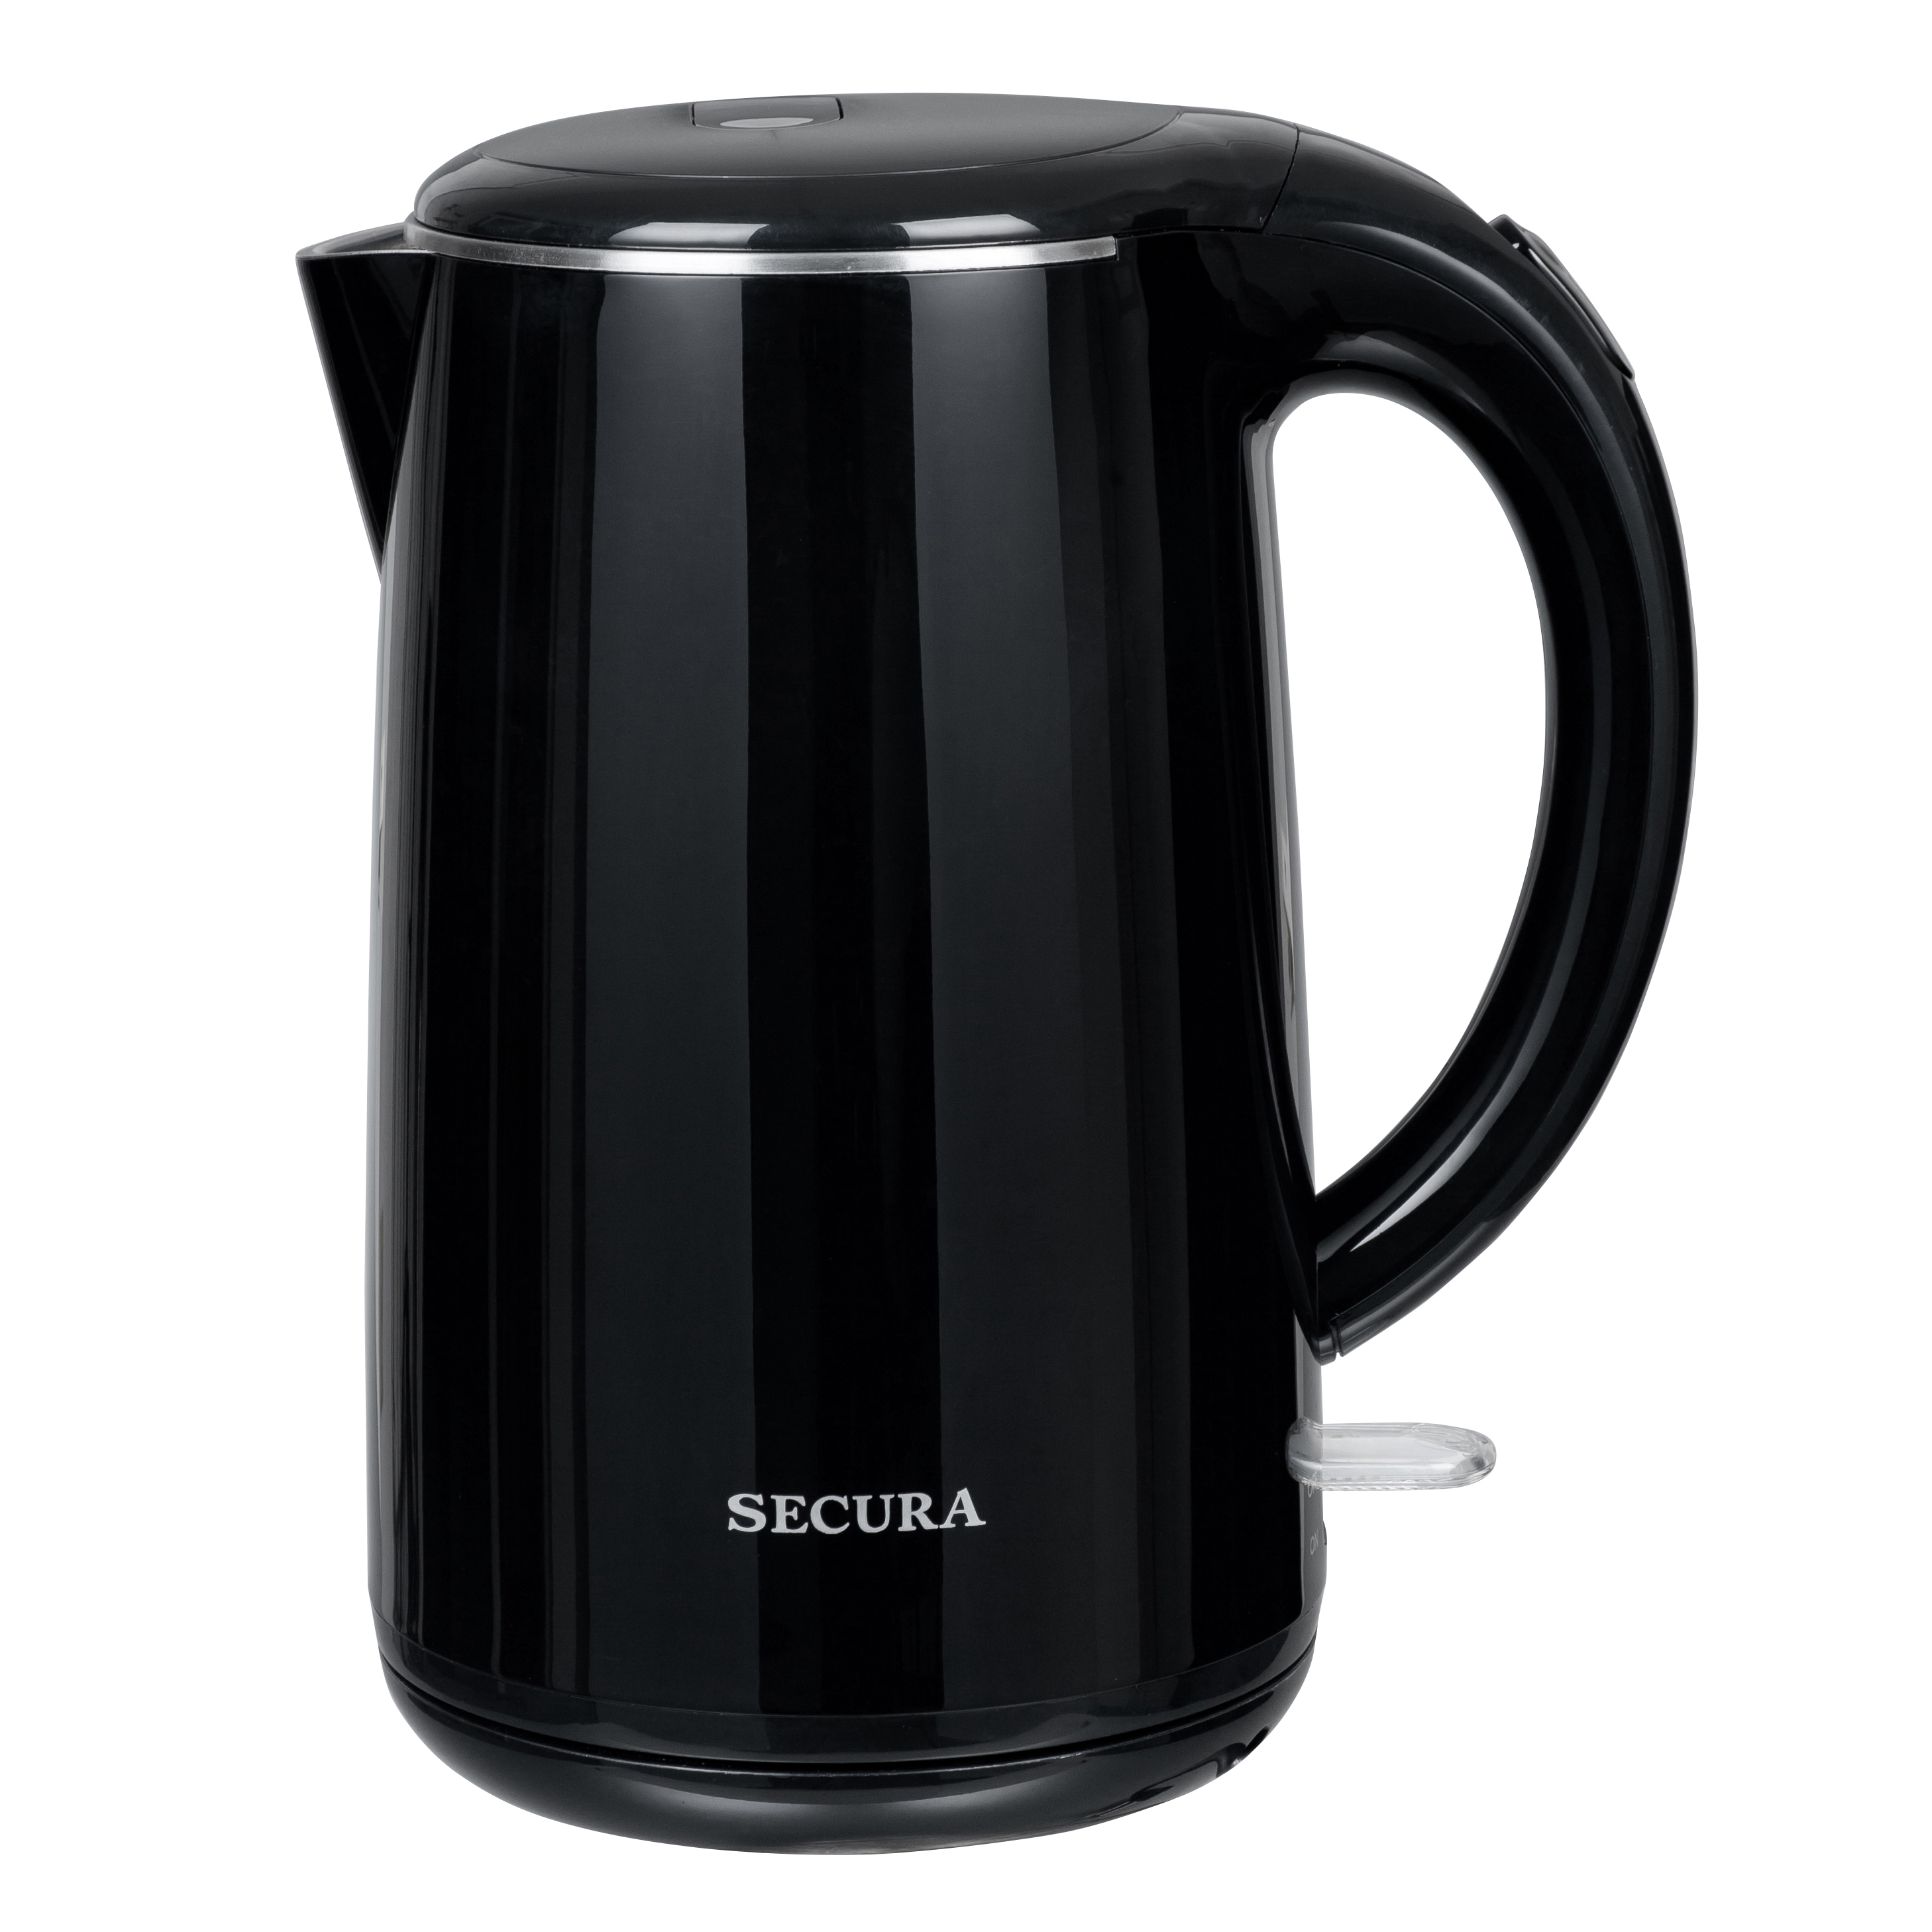 18 Quart Stainless Steel Cordless Electric Kettle The Secura